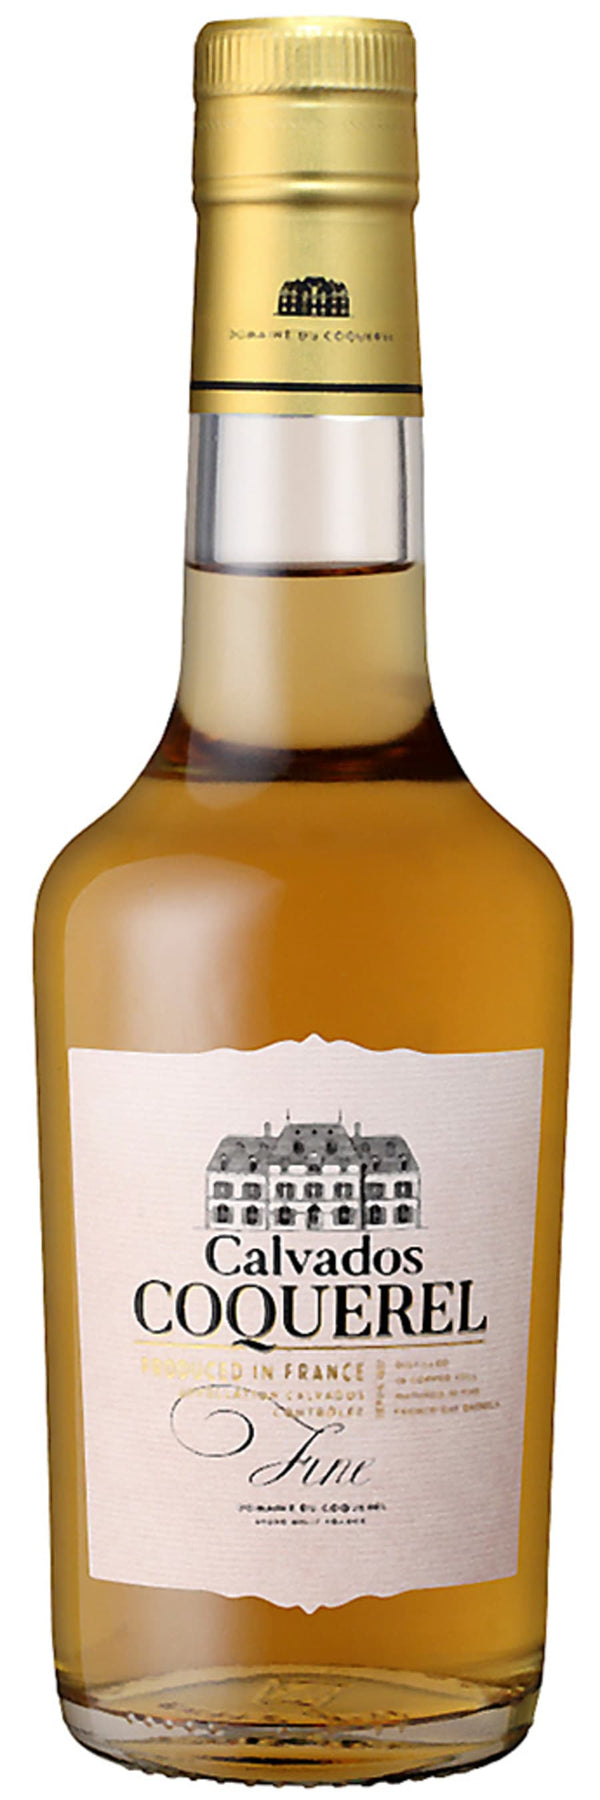 Coquerel Calvados Fine - Available at Wooden Cork